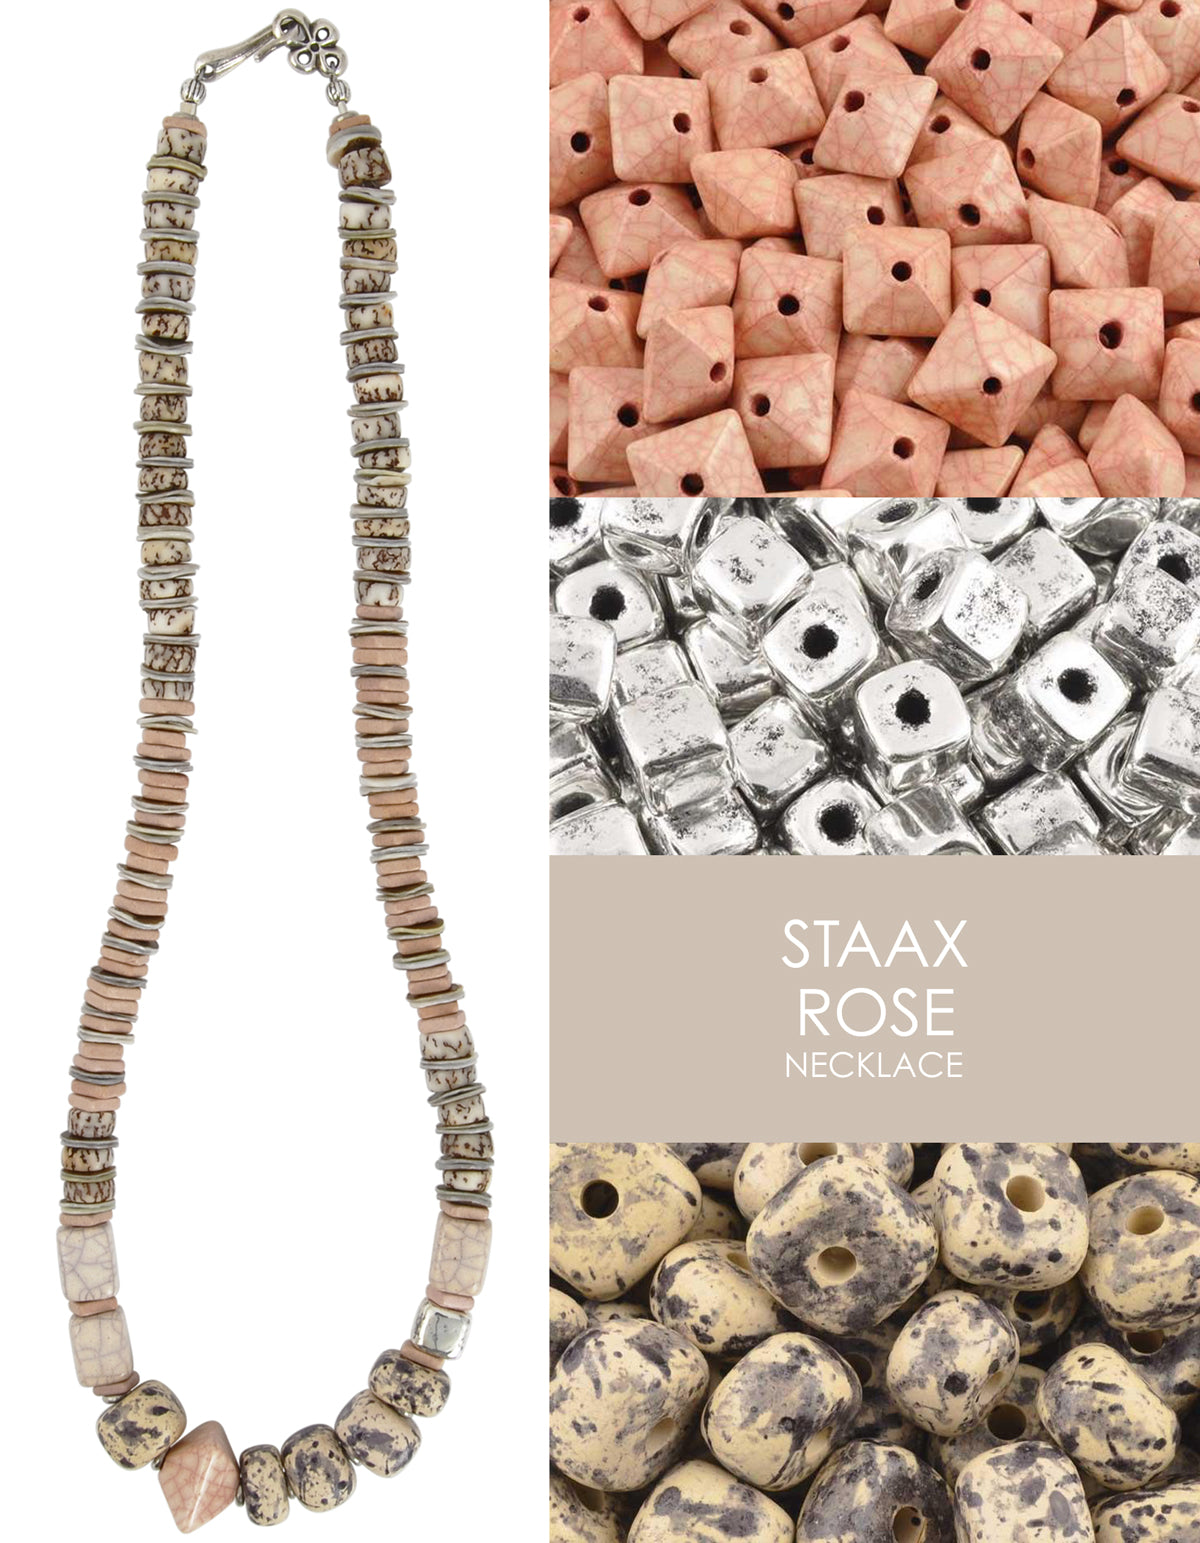 Staax Rose Necklace Tamara Scott Designs